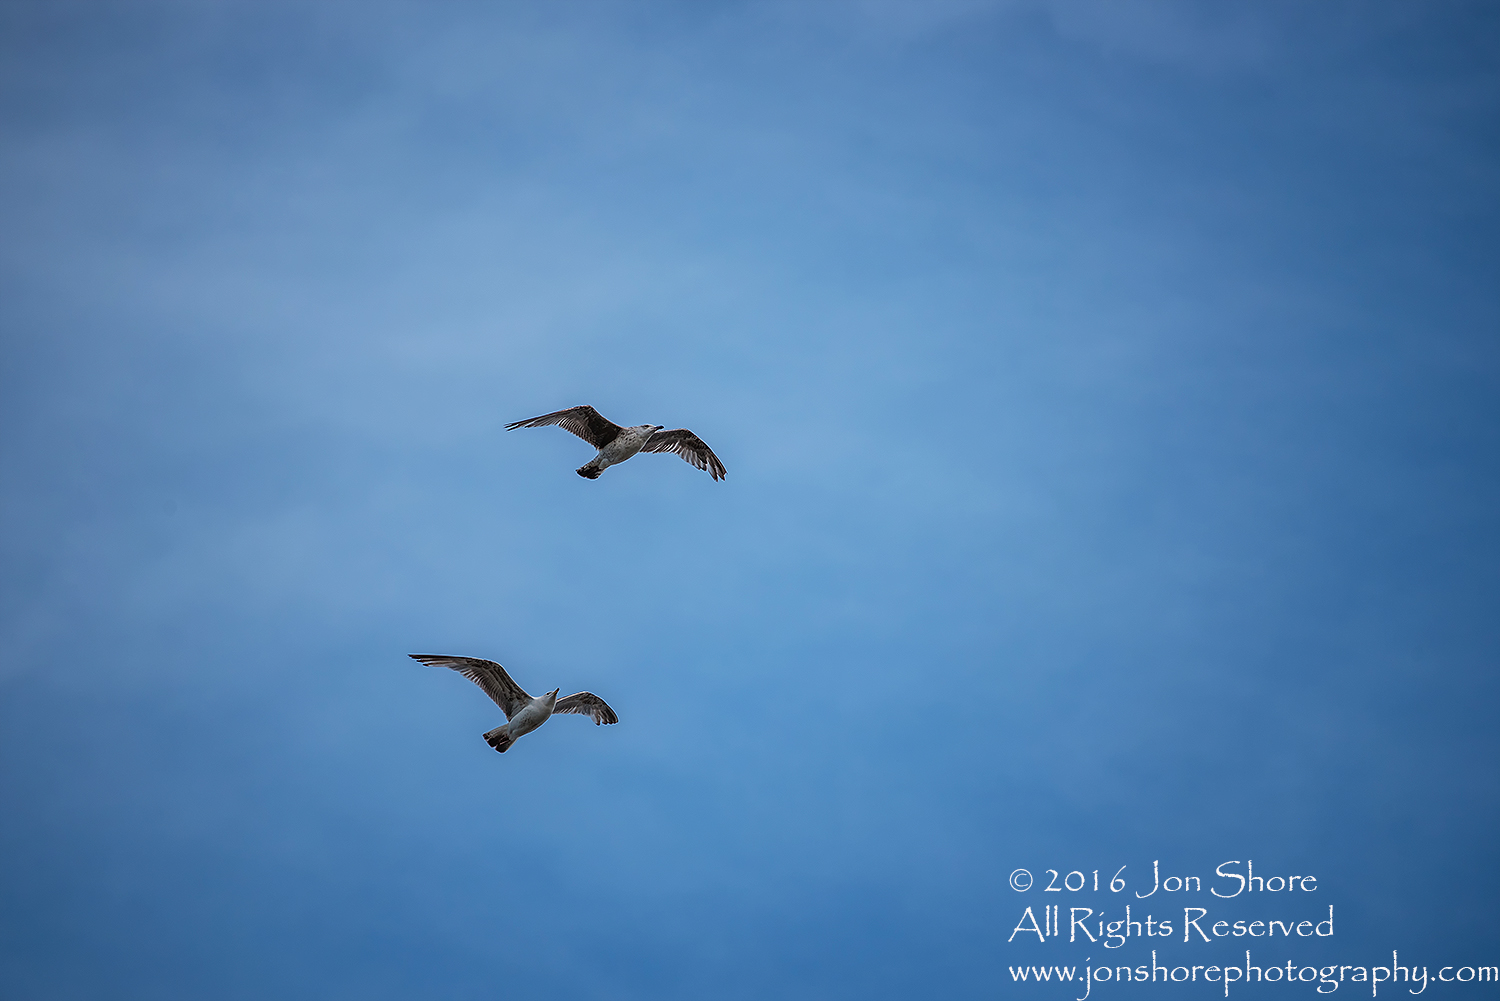 Seagulls in Blue Sky. Tamron 300mm lens